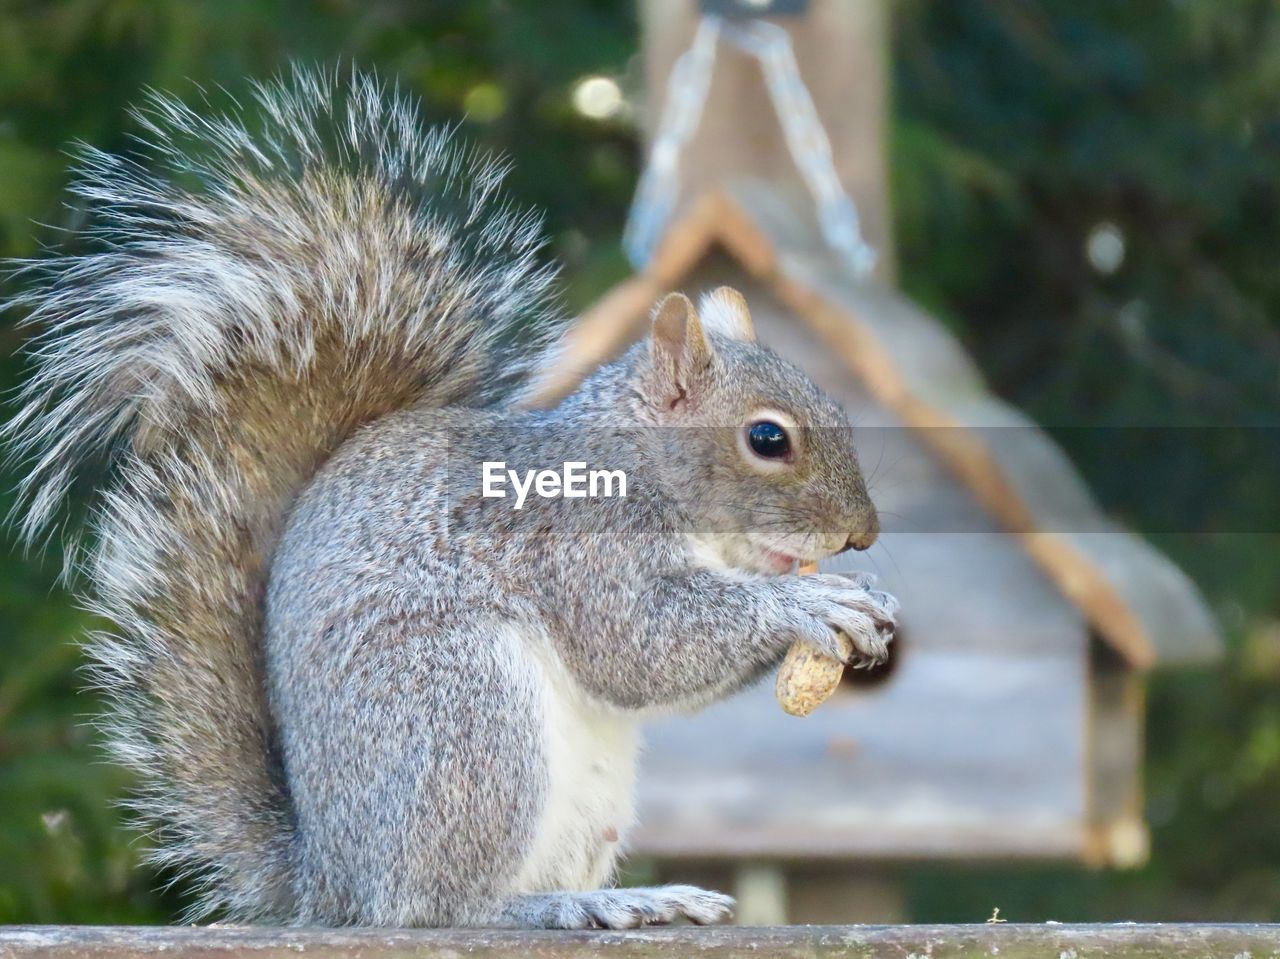 animal, animal themes, rodent, animal wildlife, mammal, squirrel, one animal, animals in the wild, focus on foreground, vertebrate, close-up, no people, day, side view, nature, eating, nut, outdoors, tree, animal body part, whisker, animal head, profile view, herbivorous